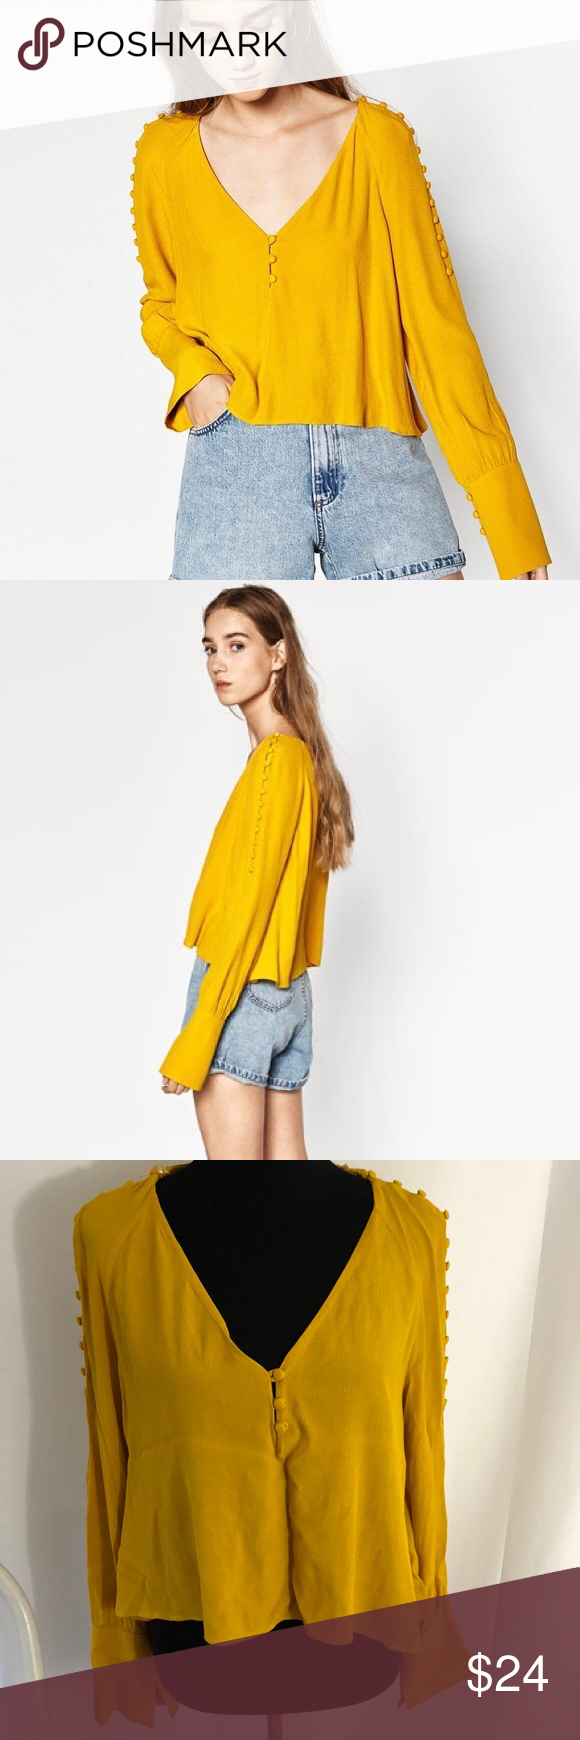 c0401ed42db55 Zara mustard cropped blouse buttons on arms Zara trafaluc collection  mustard colored long sleeve cropped top with buttons on shoulders that  leads down the ...